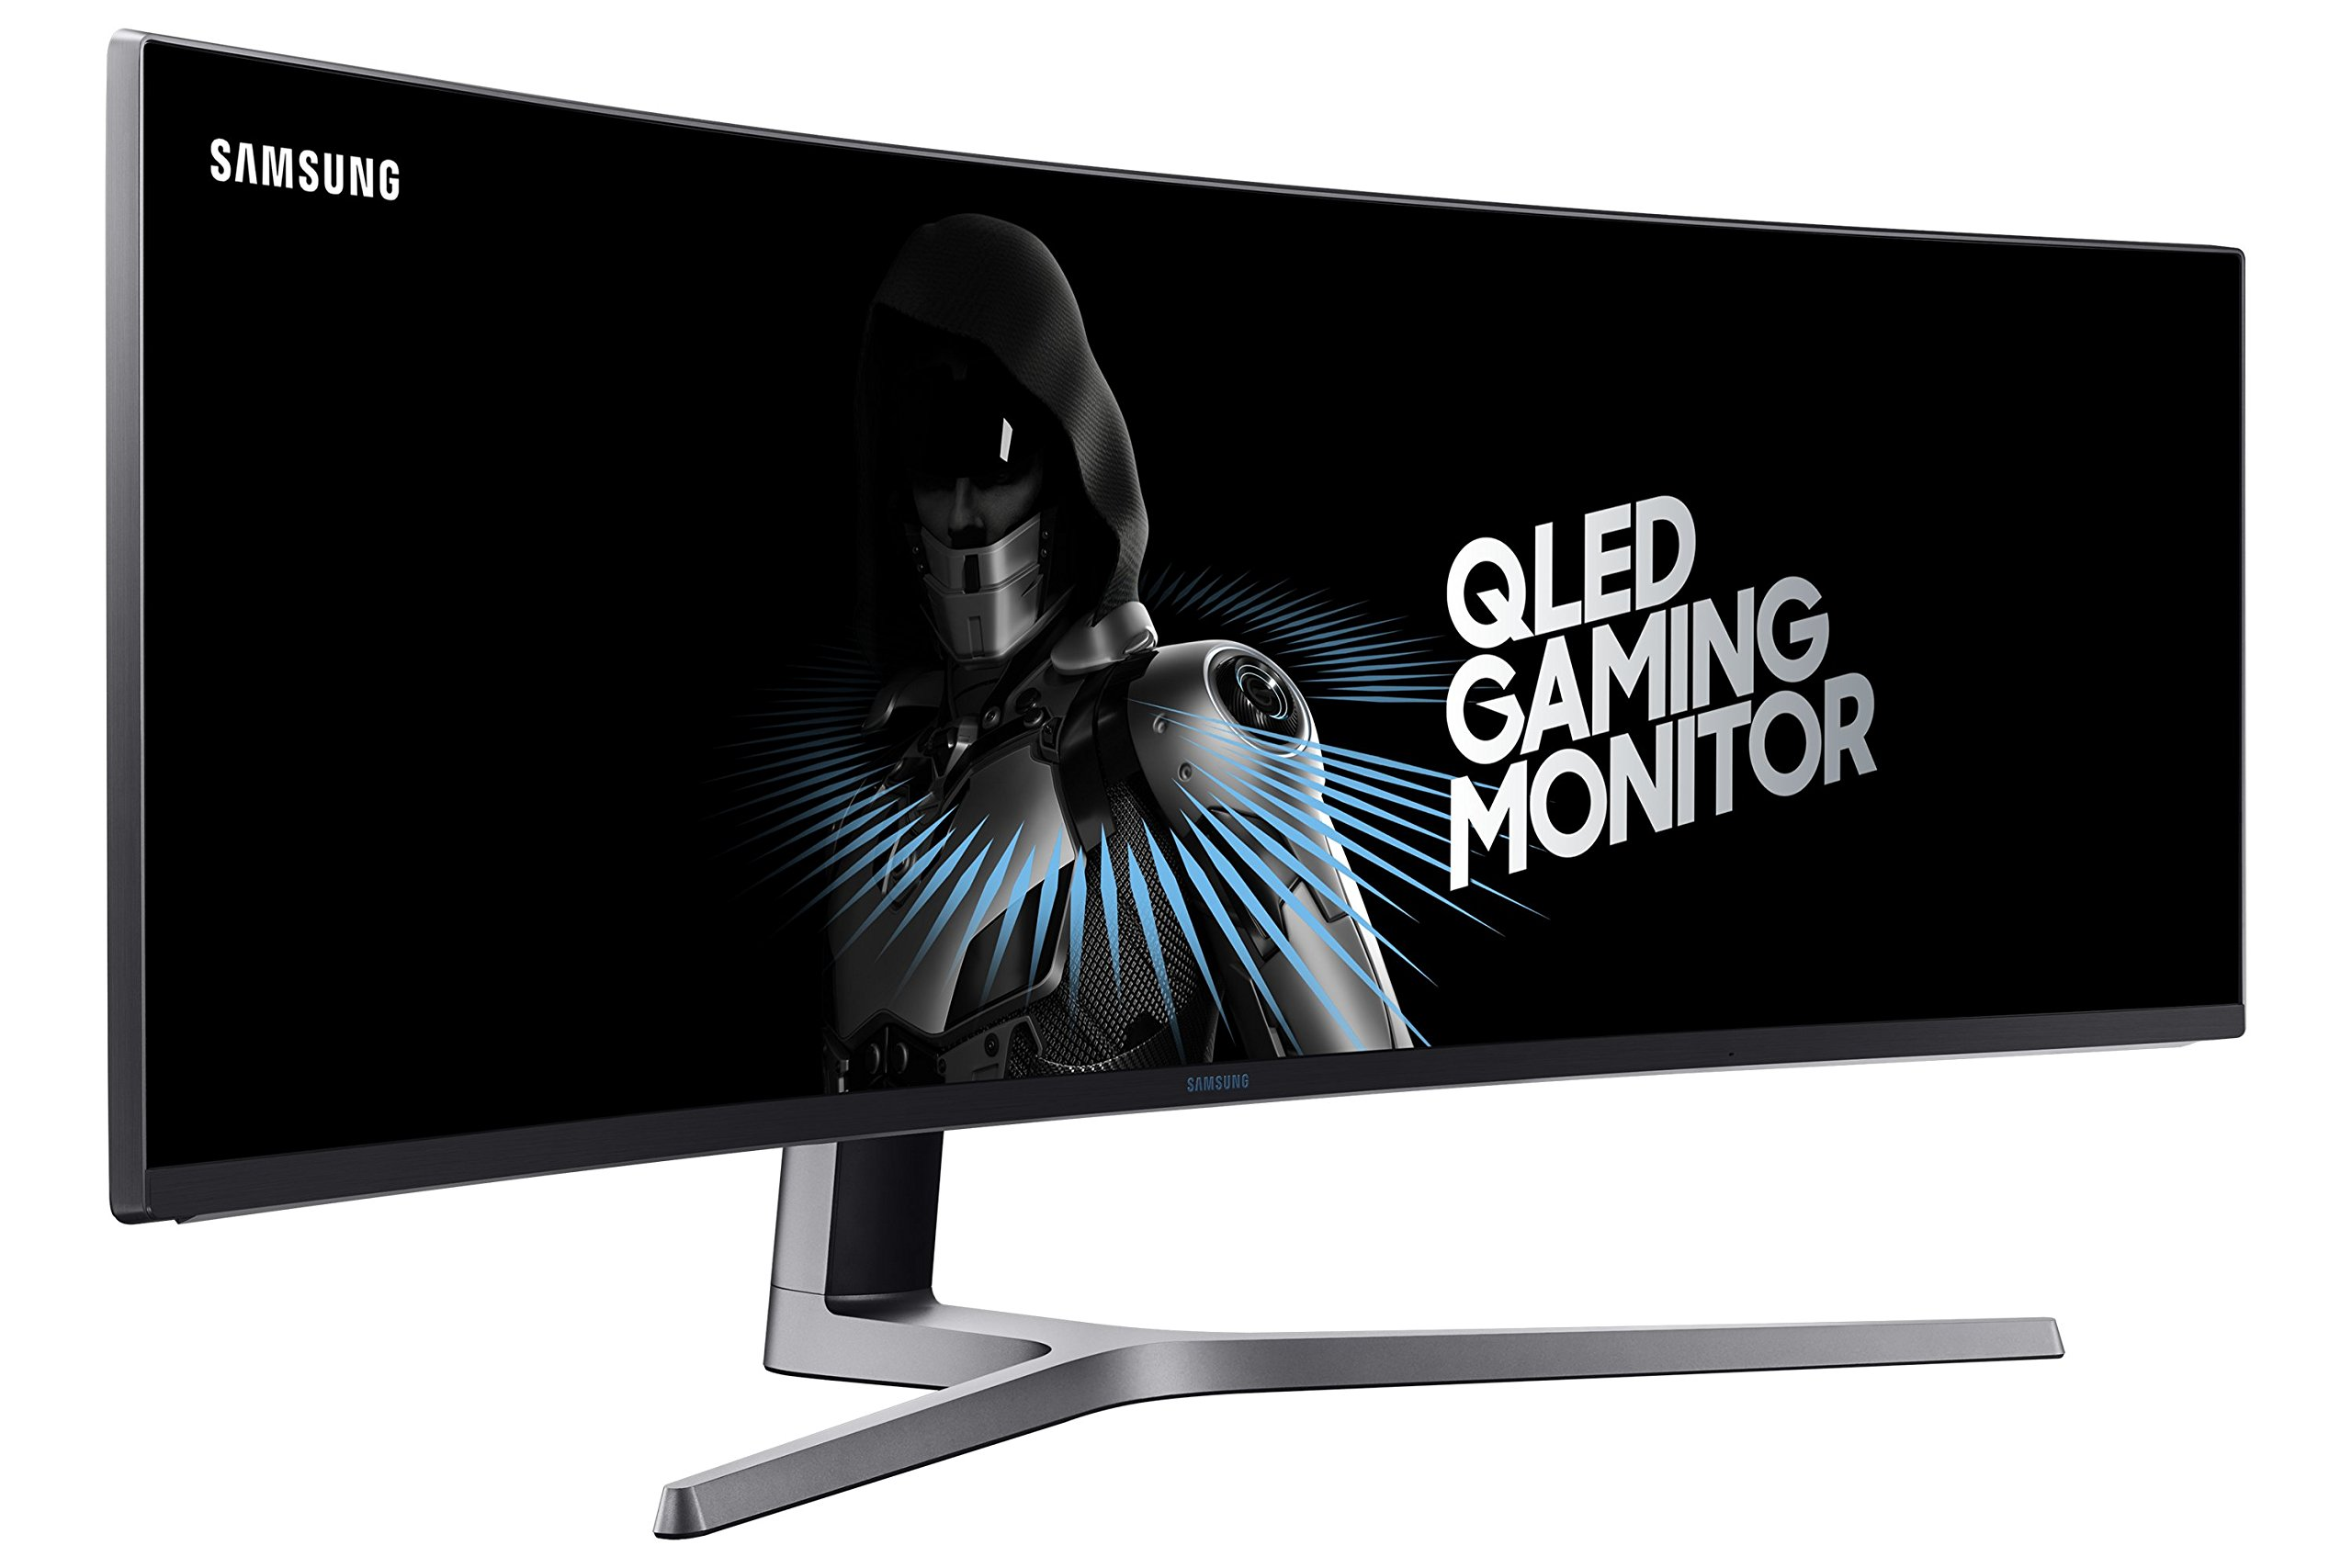 Buy Samsung Gaming Monitor Now!